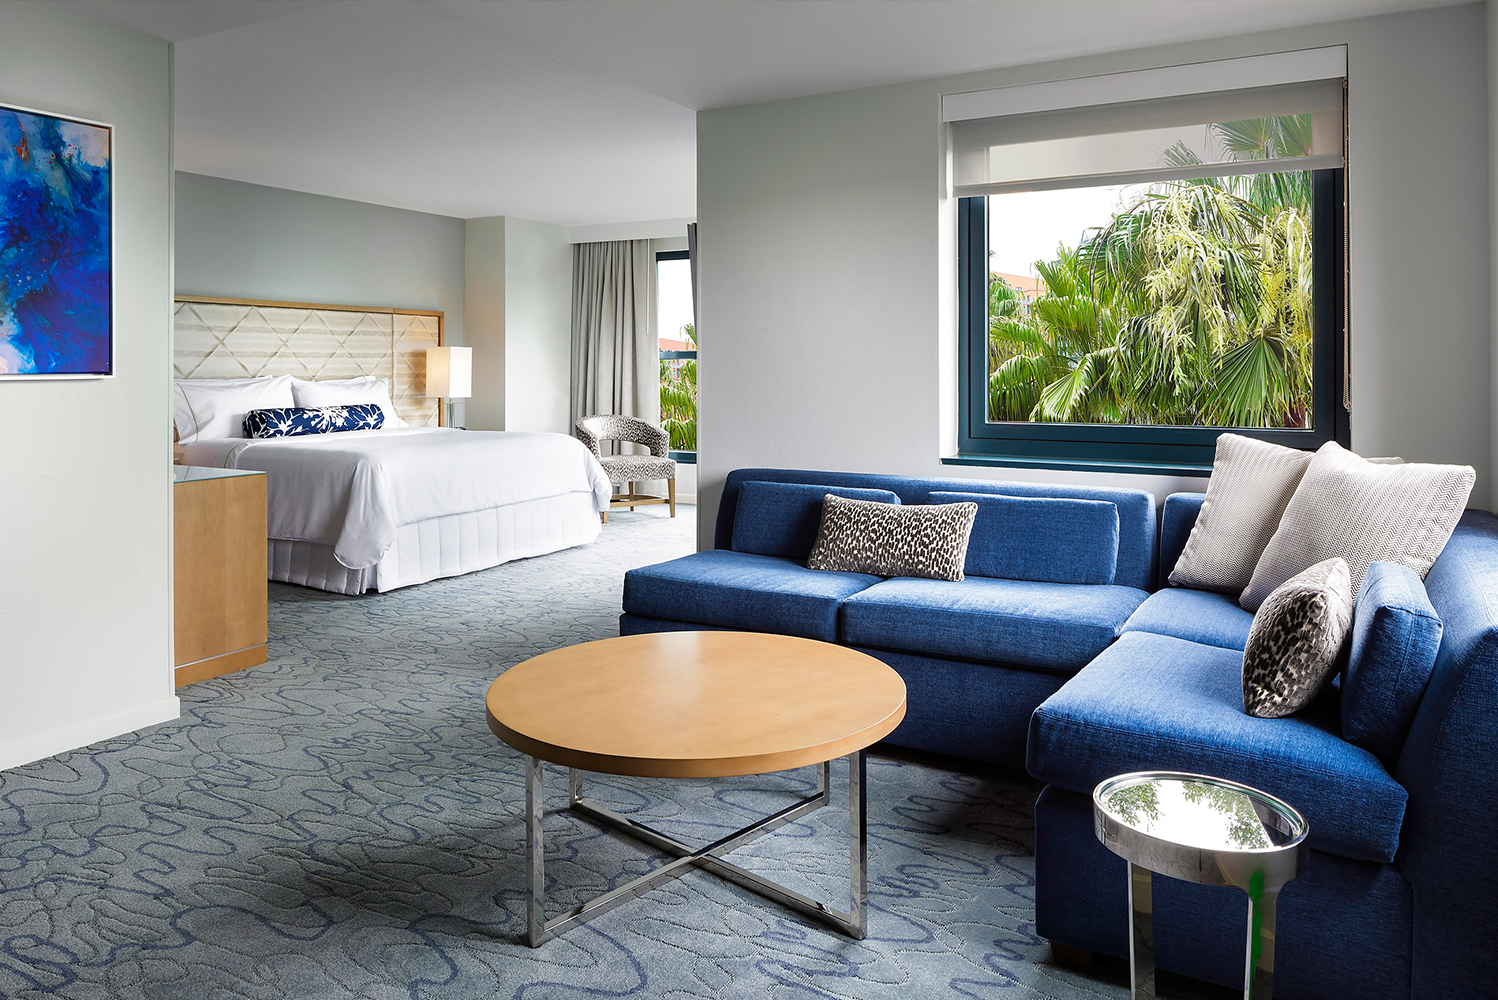 All 2,267 guestrooms were completely transformed to reflect the resort's water-themed architecture.